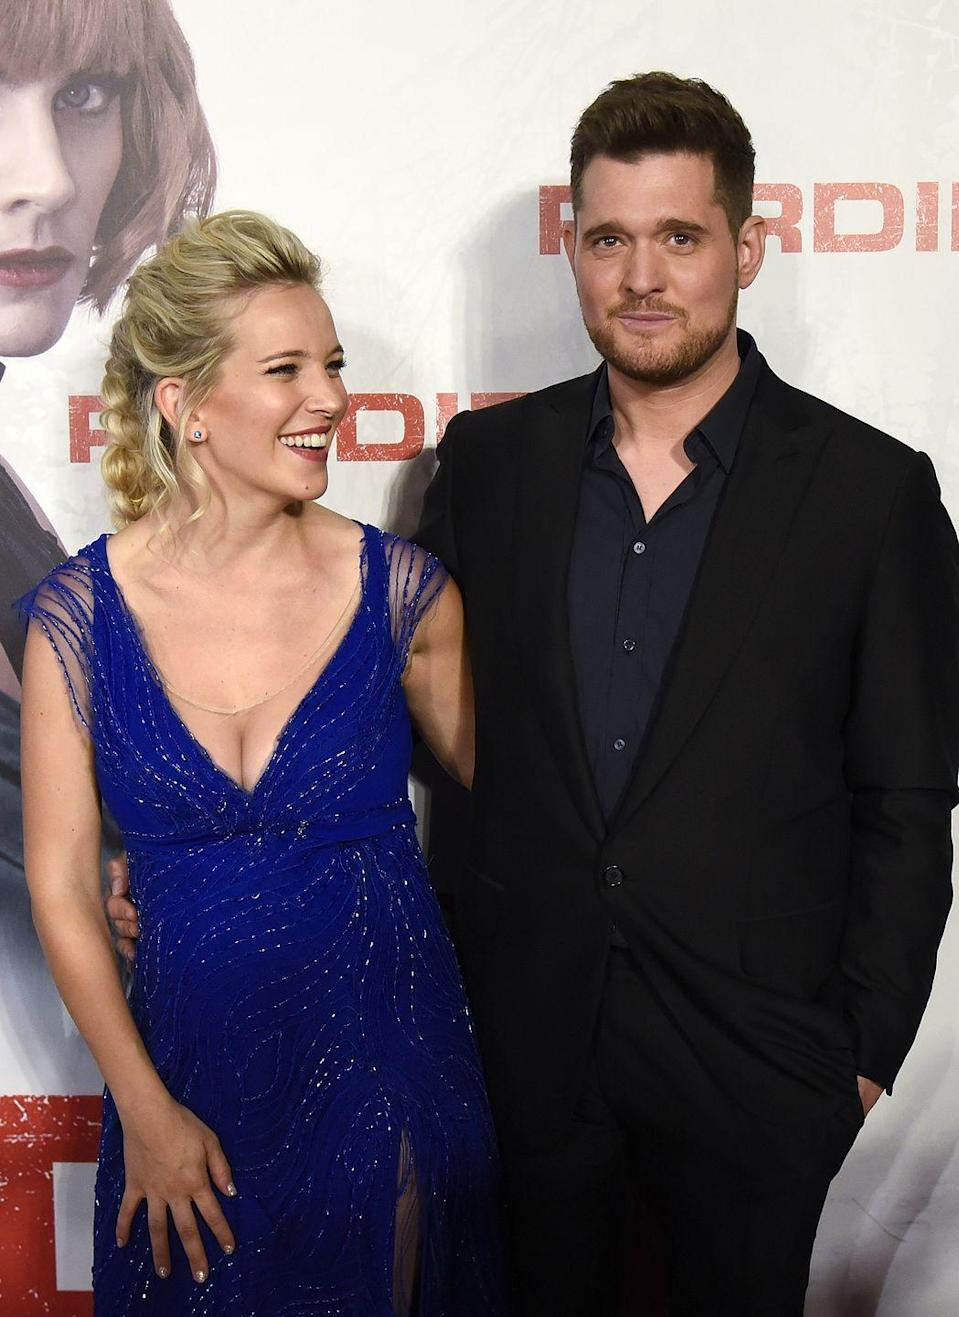 """<p><strong>Name: Vida Amber Betty</strong></p><p>Following <a href=""""https://www.cosmopolitan.com/uk/entertainment/a22568977/michael-buble-wife-given-birth-baby-girl/"""" rel=""""nofollow noopener"""" target=""""_blank"""" data-ylk=""""slk:the birth of their third child"""" class=""""link rapid-noclick-resp"""">the birth of their third child</a>, Michael's rep confirmed to <a class=""""link rapid-noclick-resp"""" href=""""https://people.com/babies/michael-buble-luisana-lopilato-name-daughter-vida-amber-betty/"""" rel=""""nofollow noopener"""" target=""""_blank"""" data-ylk=""""slk:People"""">People</a> that their newborn daughter was named Vida Amber Betty - with 'Vida' meaning 'Life' in Luisana's native Spanish. Amber was after the Bublé's mum Amber Santagà and Betty after his wife's mum Beatriz Lopilato. </p>"""